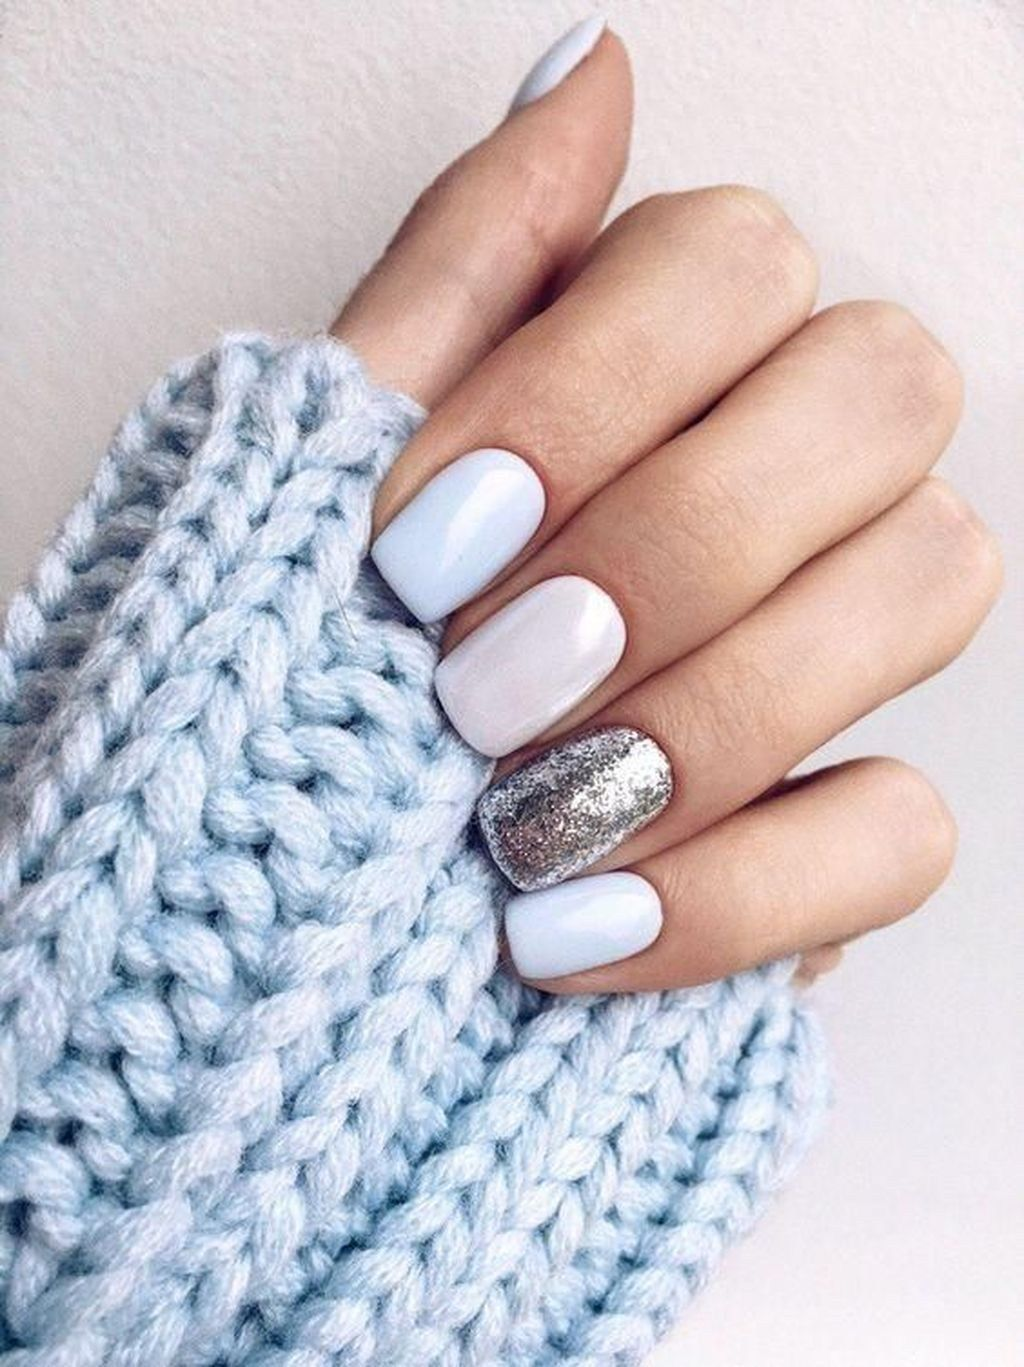 42 Popular Nail Color Ideas For Spring Trend 2018 Nails